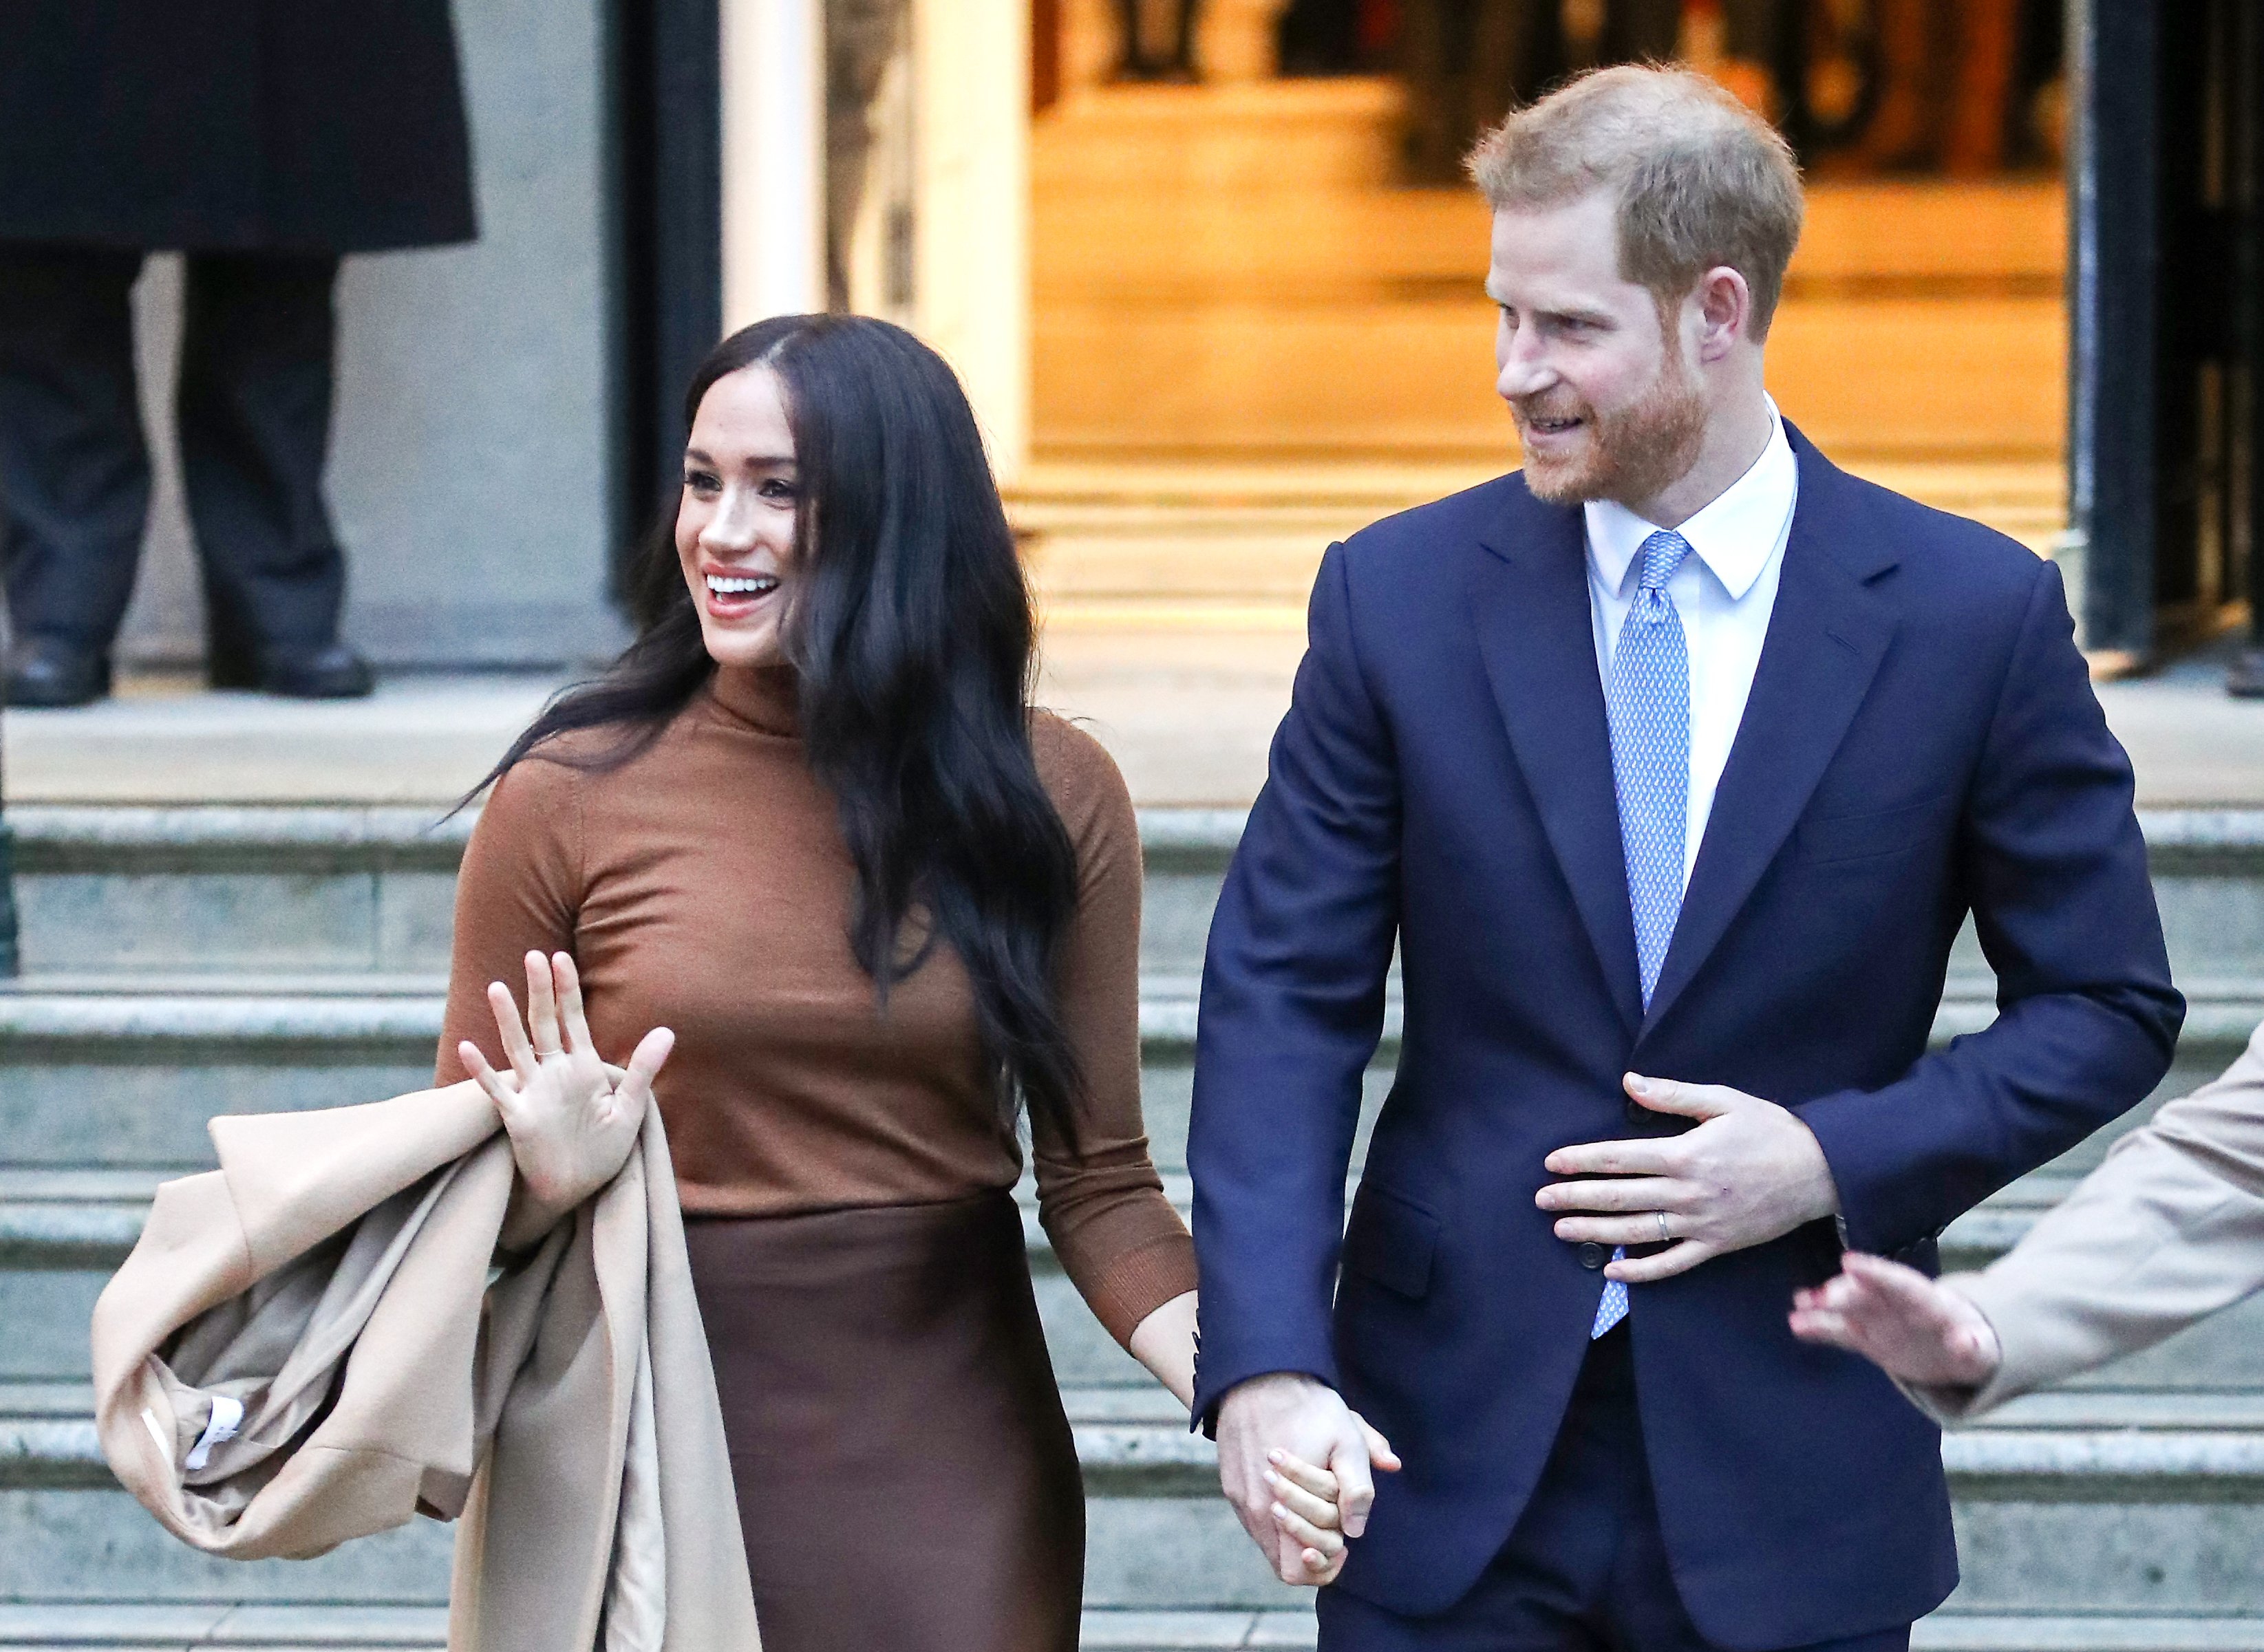 Prince Harry and Meghan Markle depart Canada House on January 07, 2020, in London, England. | Source: Getty Images.